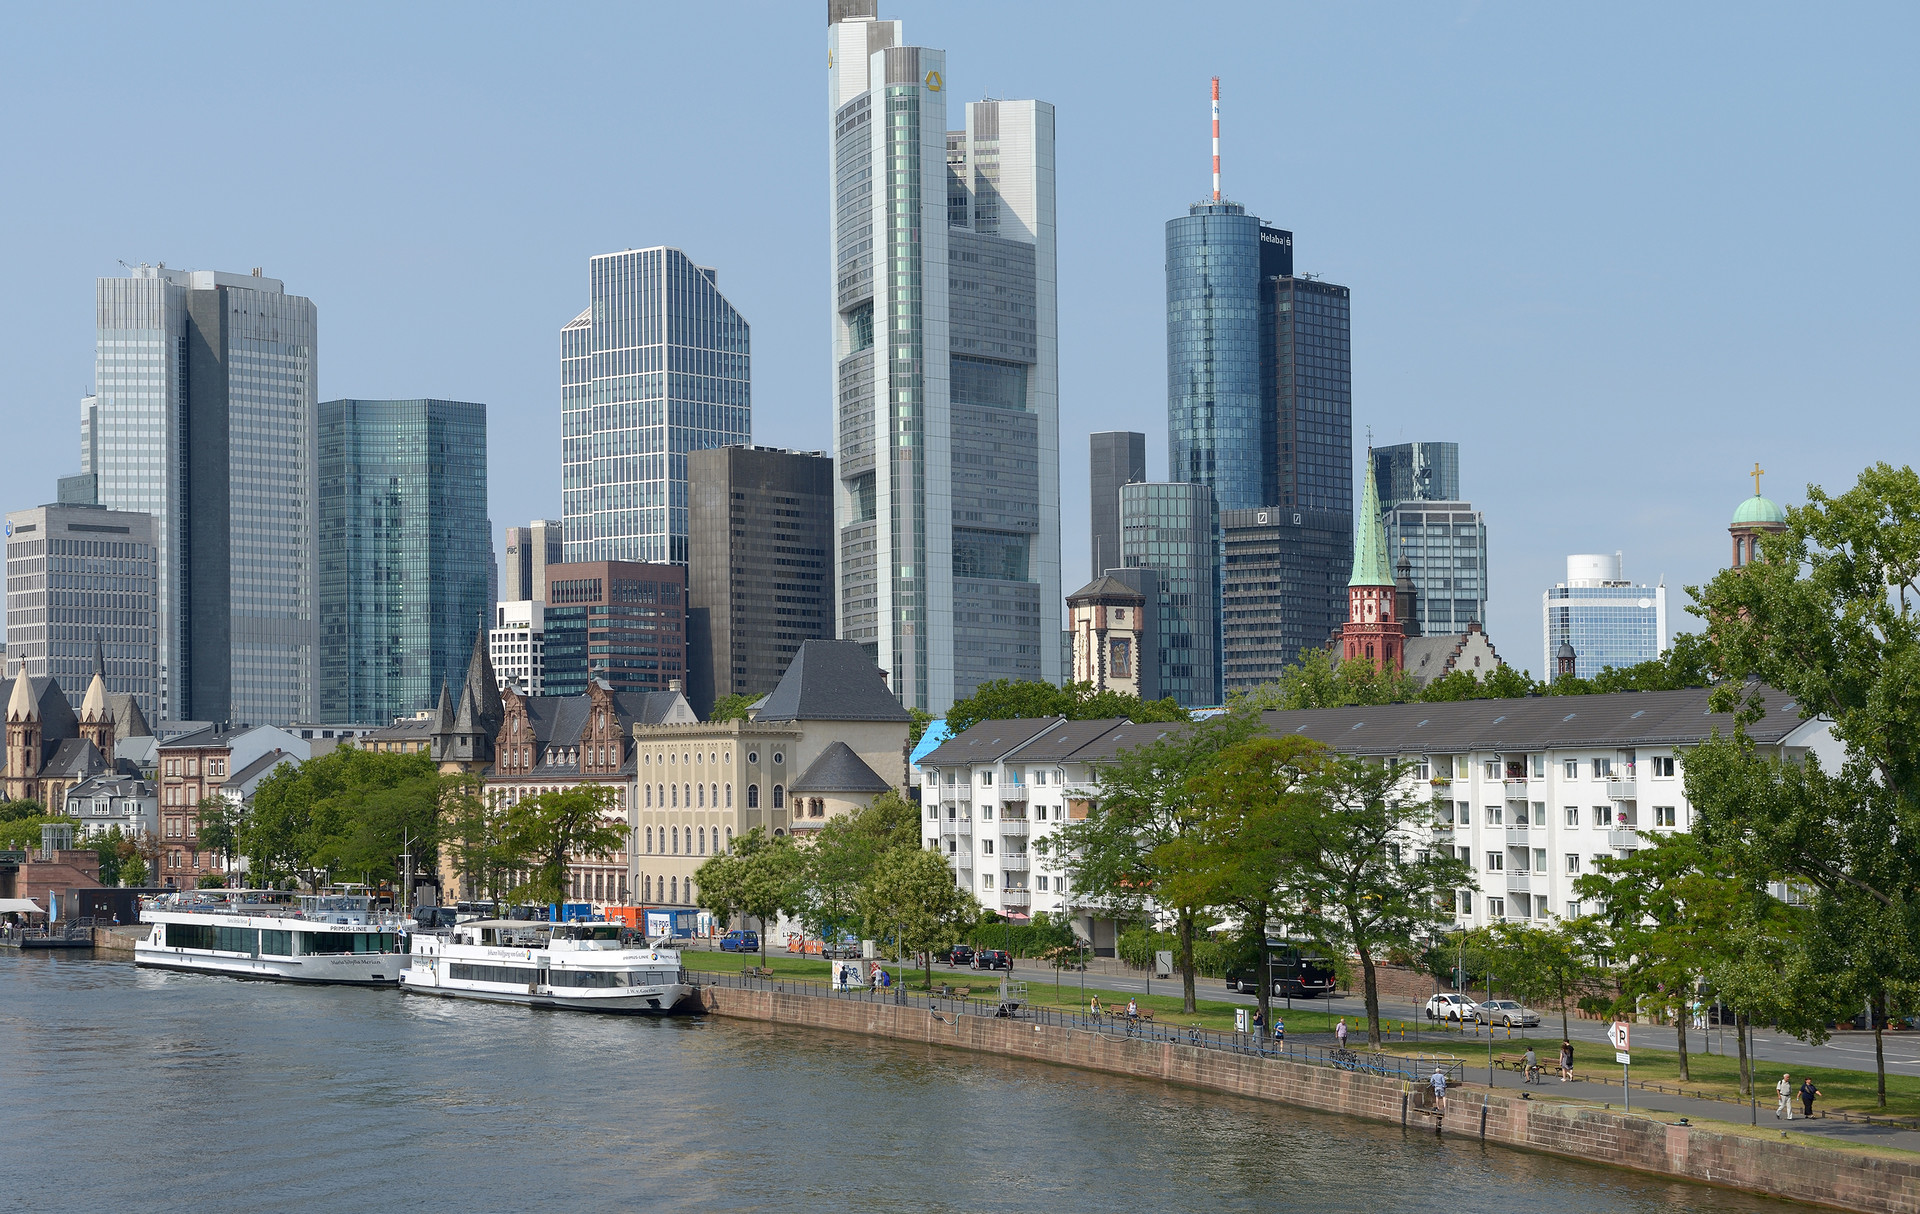 Frankfurt am Main: a vibrant city in the centre of Germany